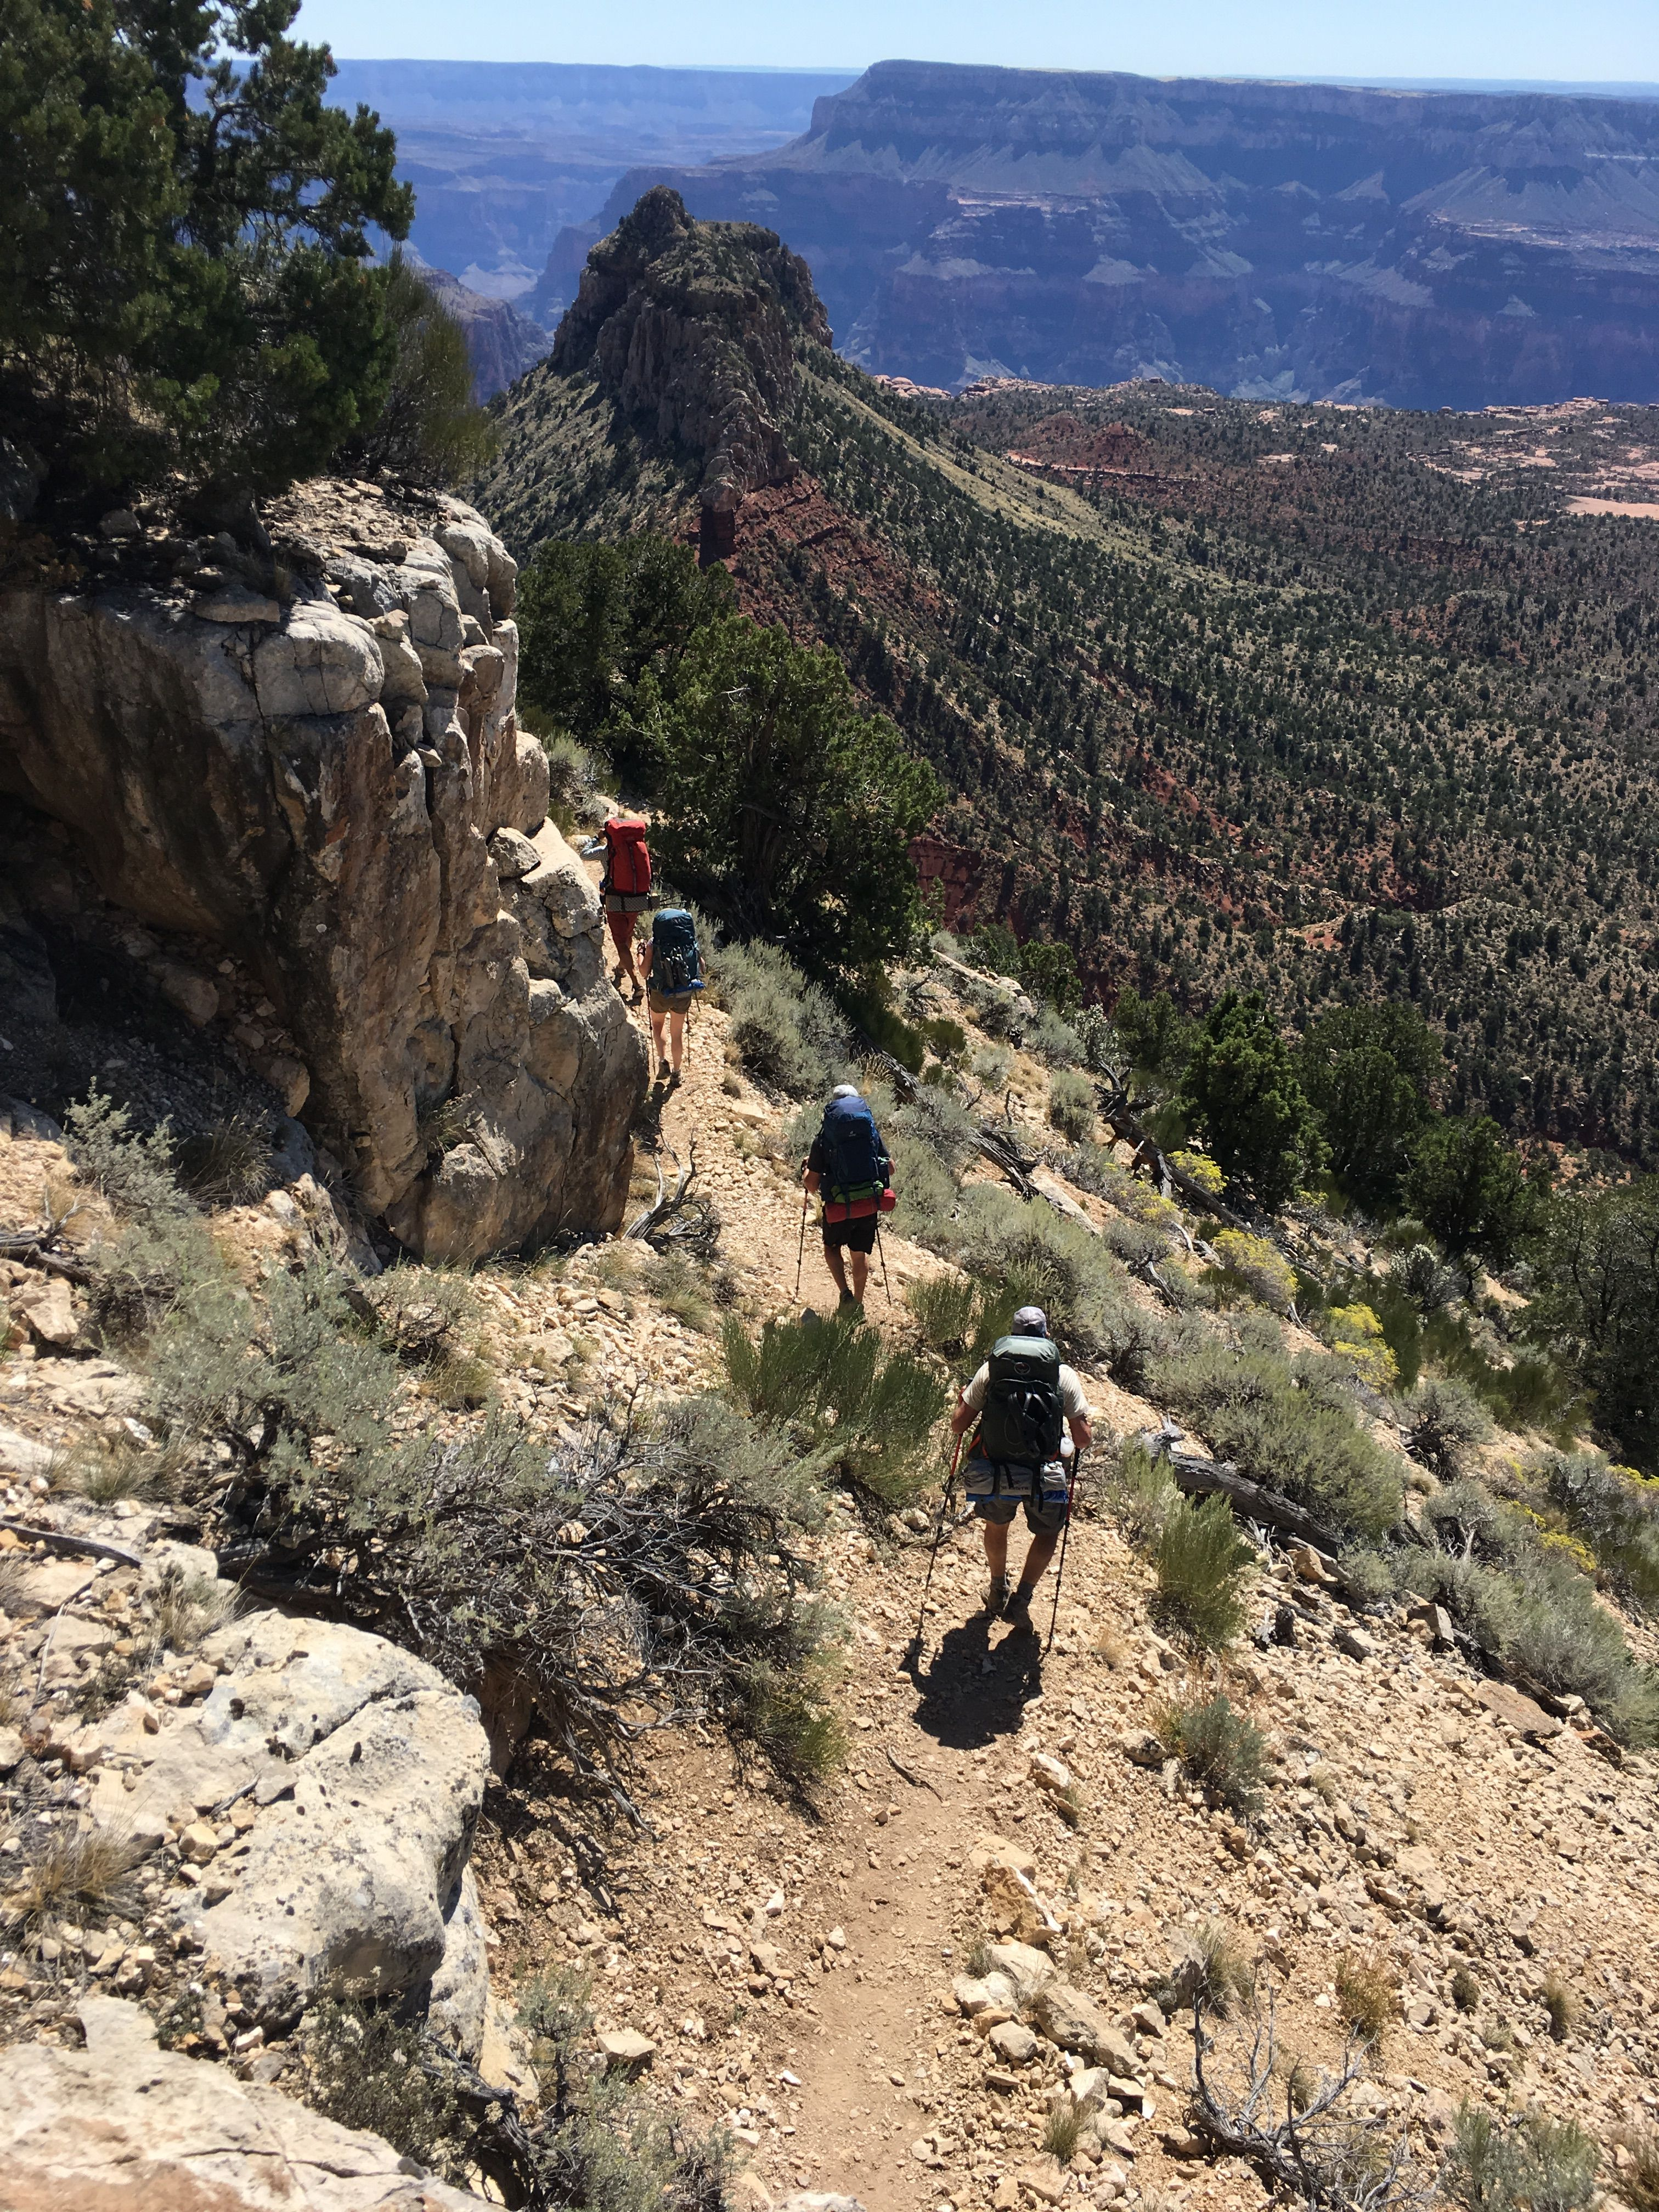 Guided Canoe And Hiking Trips In: What It's Like To Take A Guided Hike